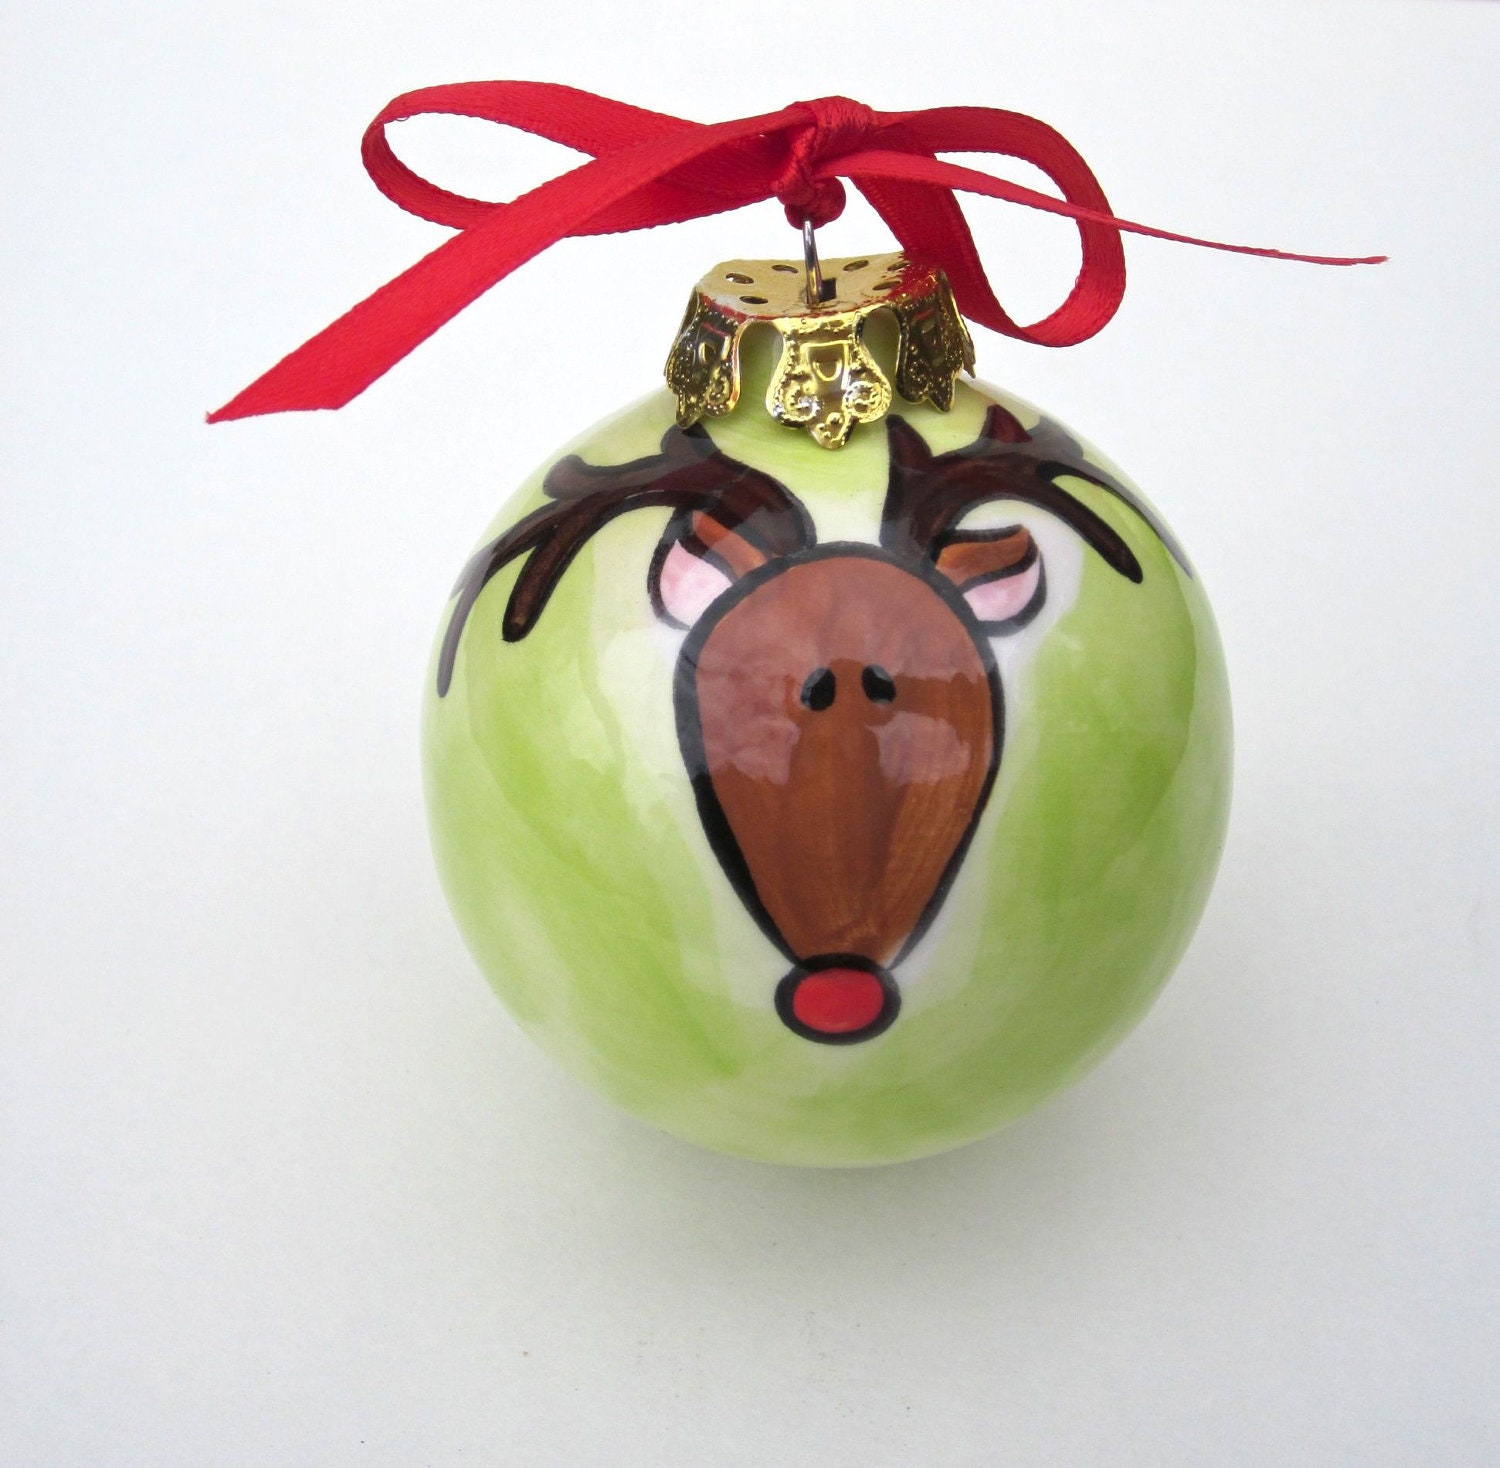 Hand Painted Personalized Ceramic Bulb Reindeer Christmas Ornament